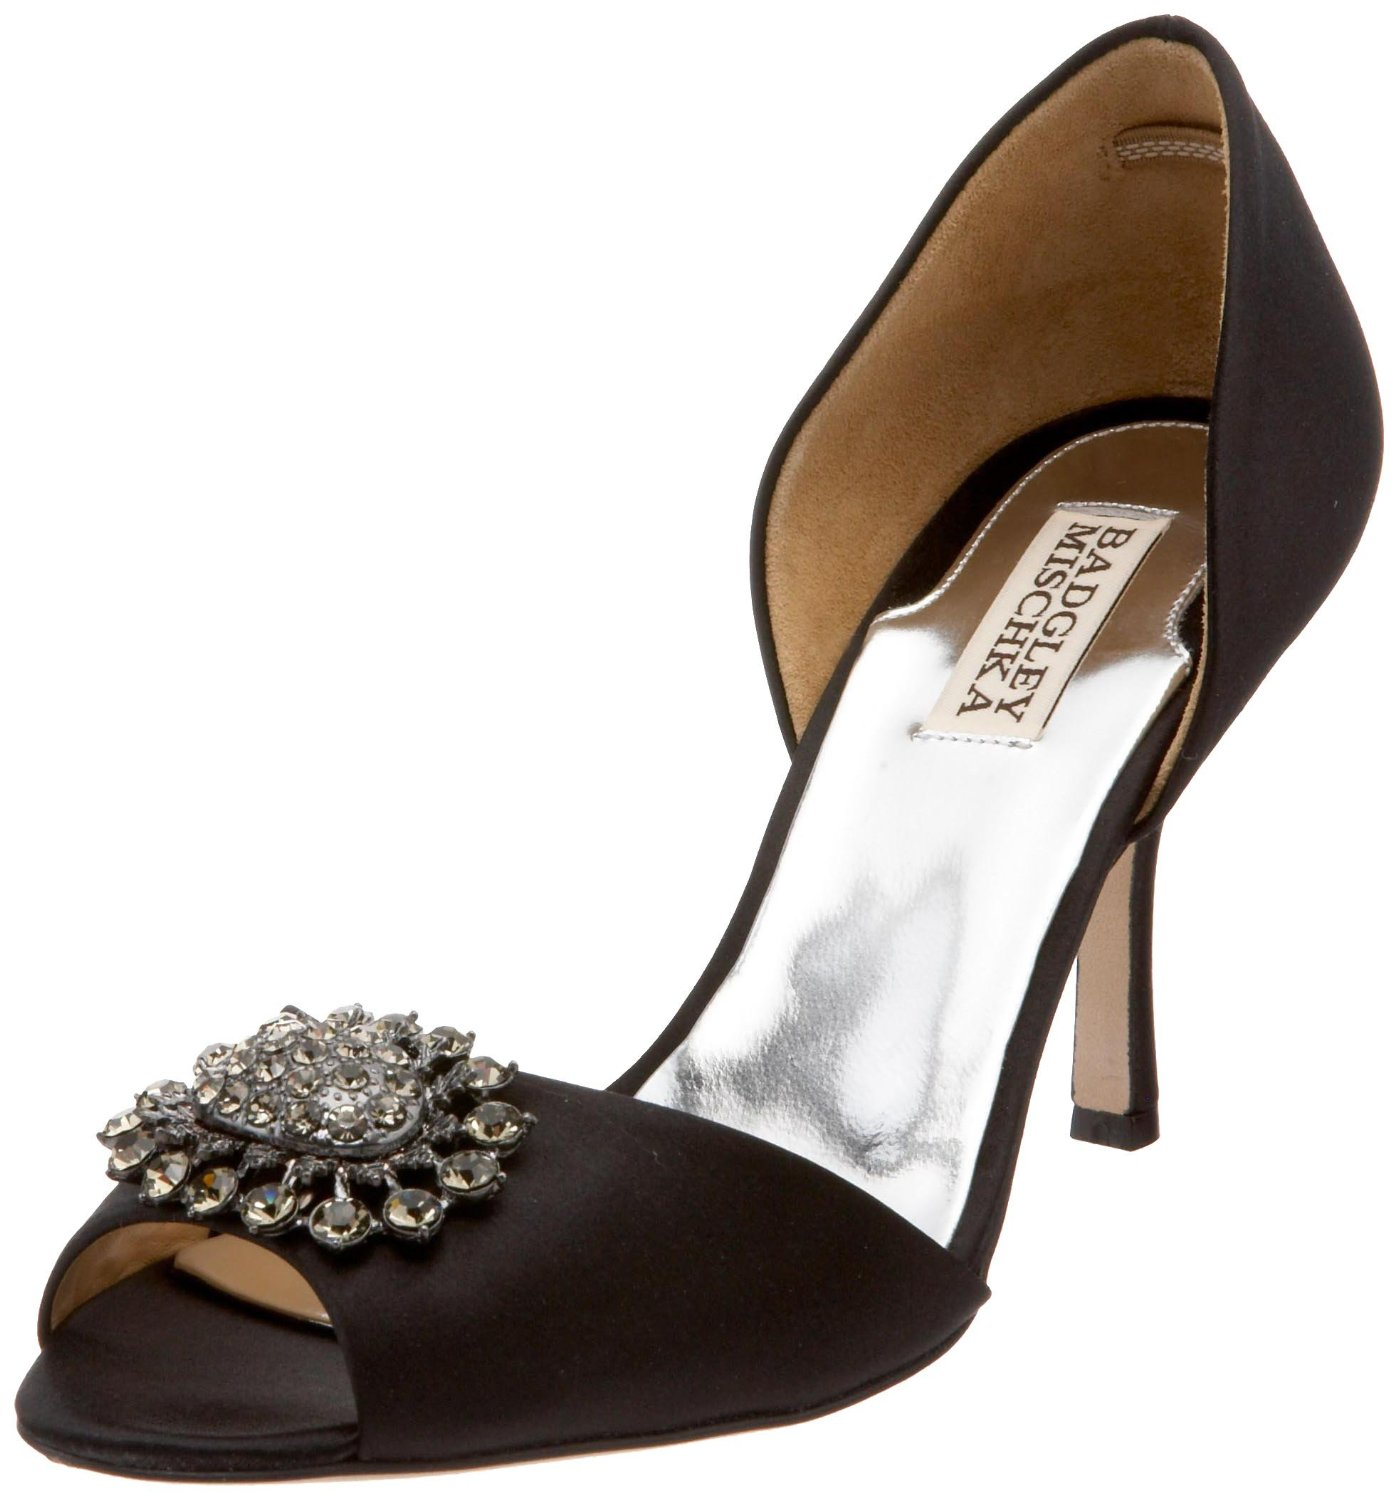 Red Badgley Mischka Shoes Uk